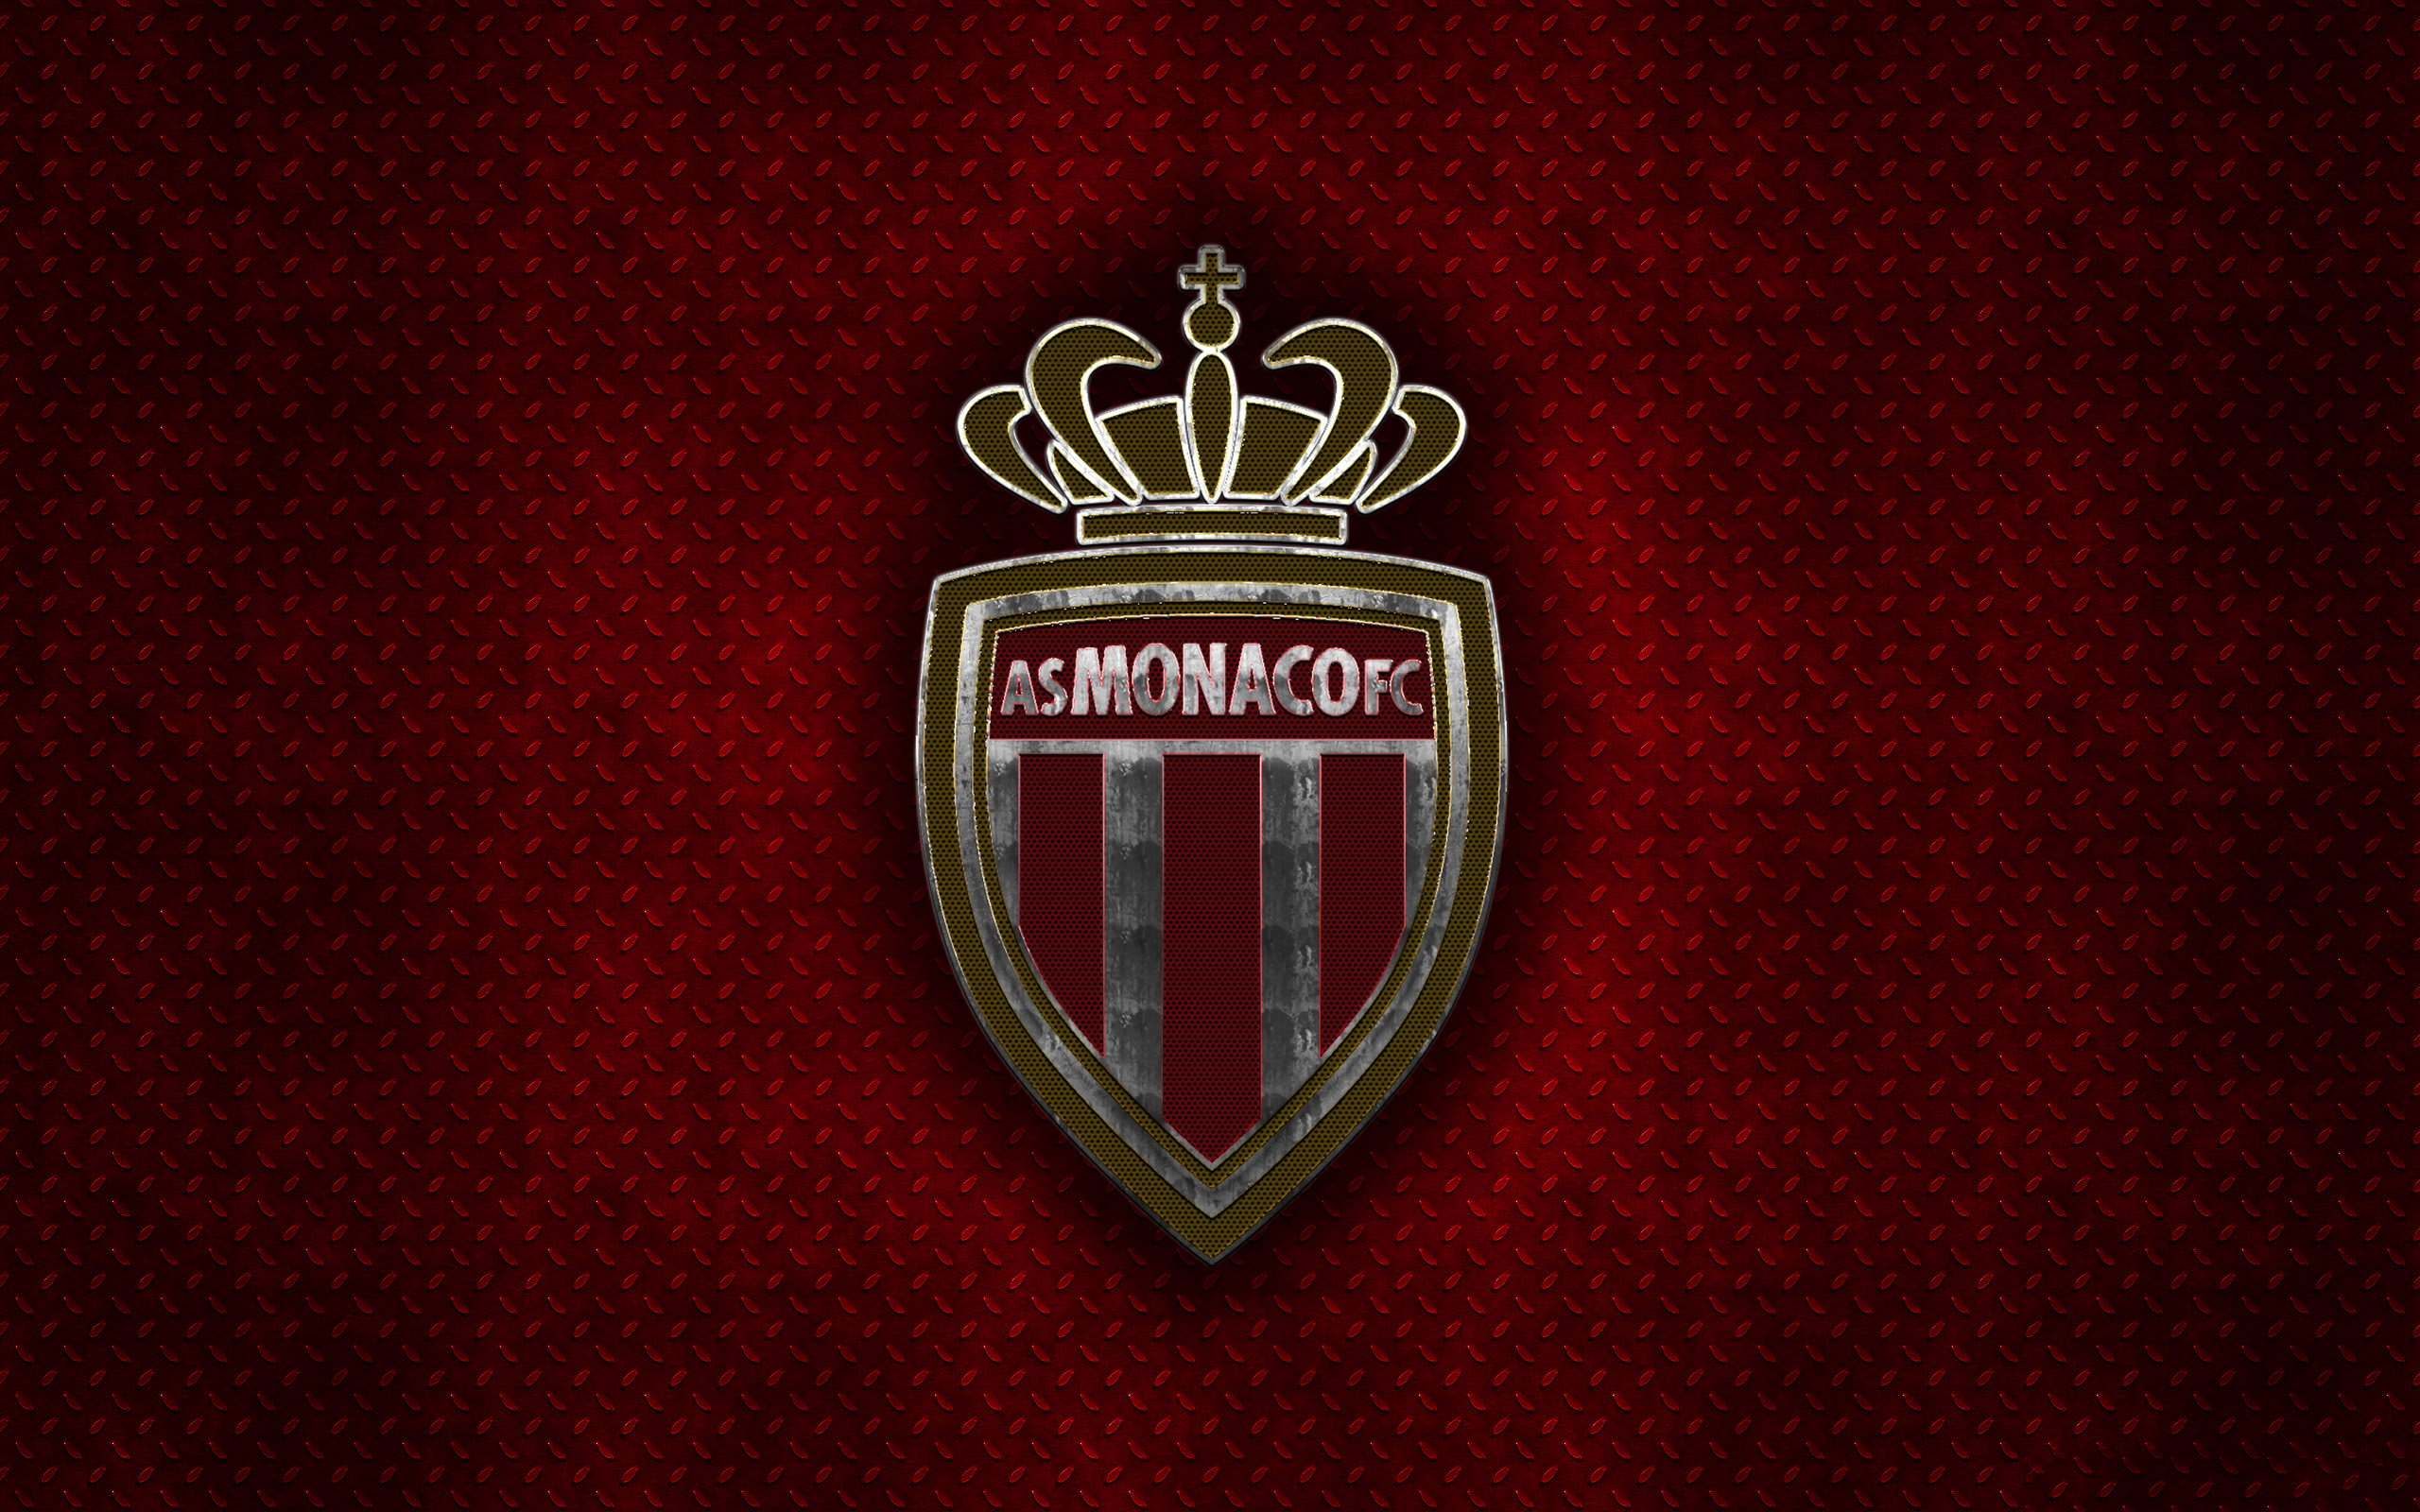 AS Monaco FC HD Wallpaper Background Image 2560x1600 ID 2560x1600